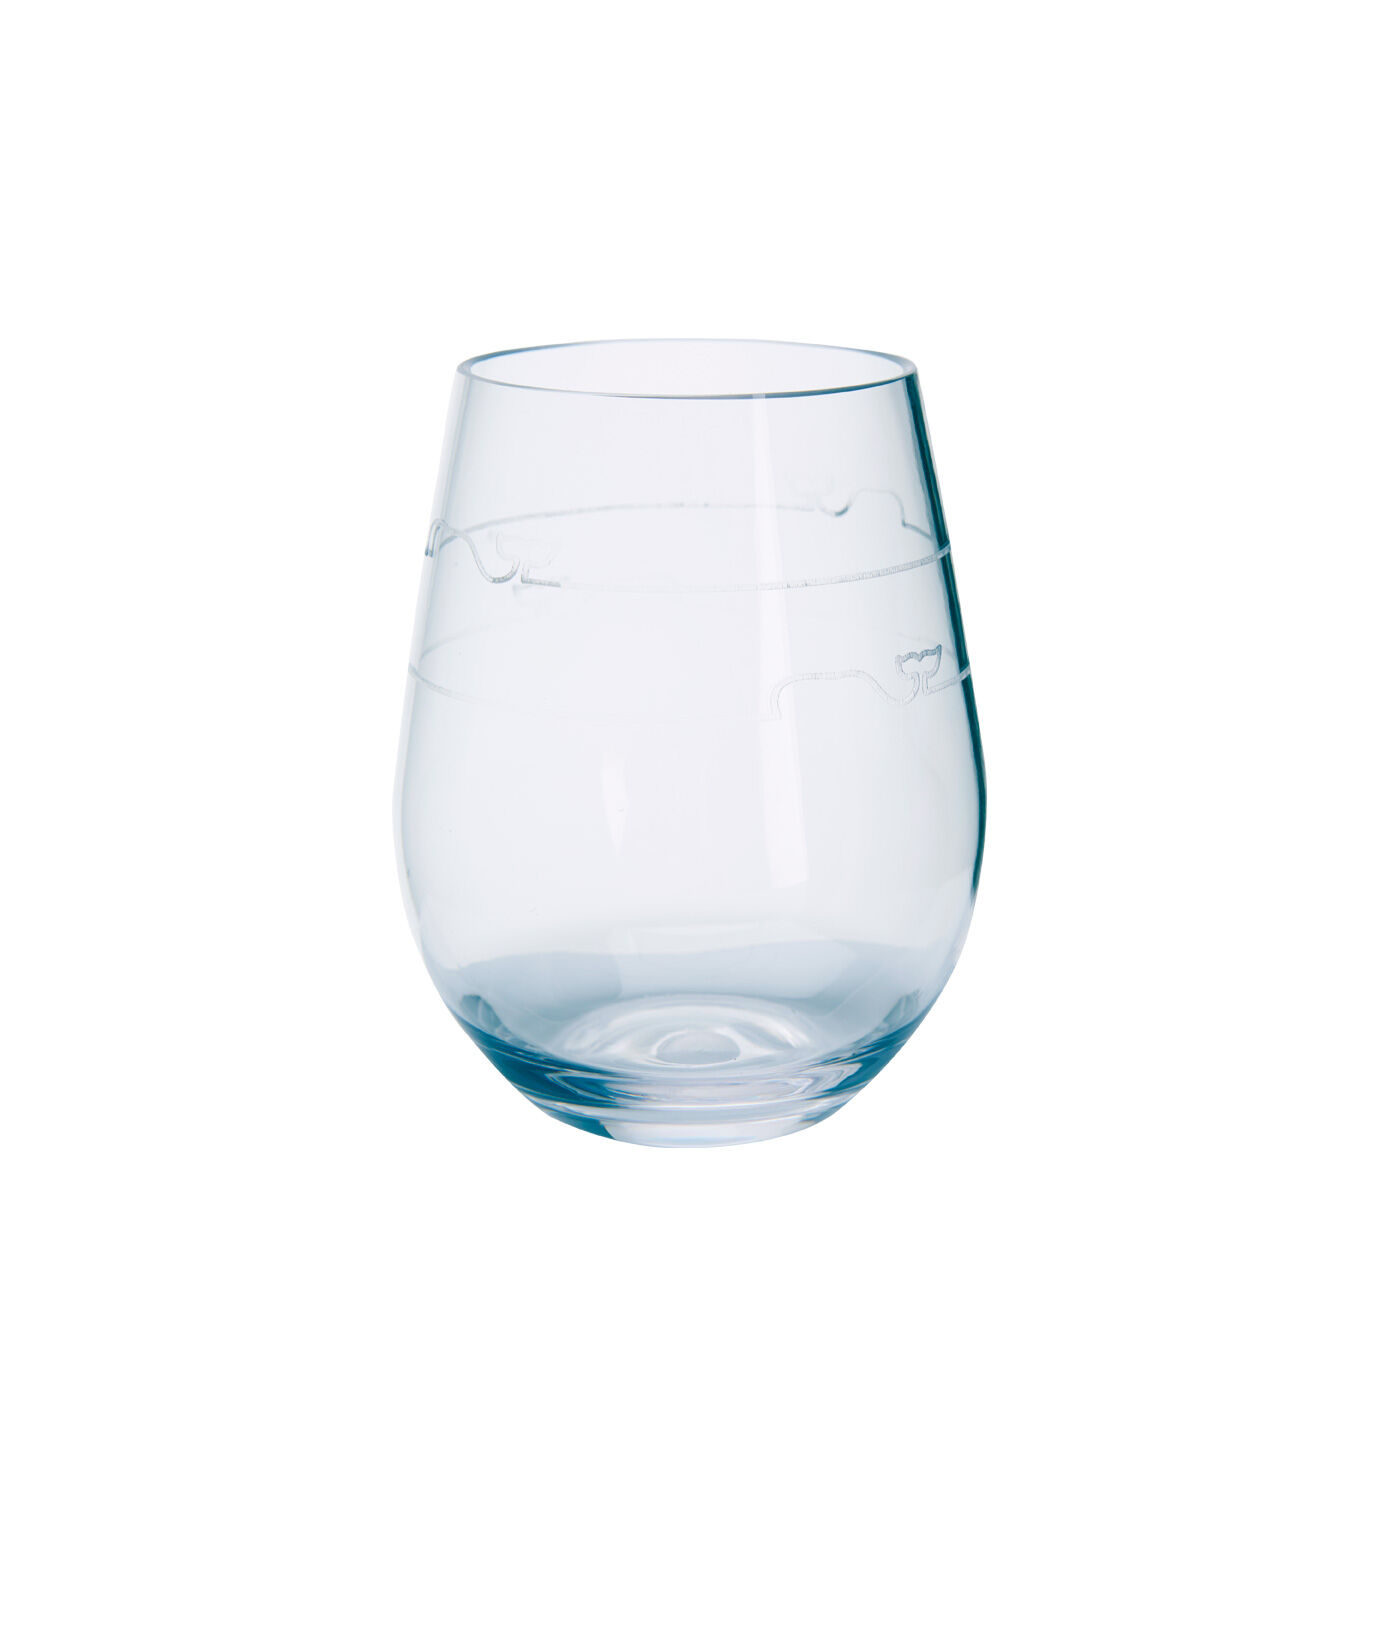 whale line acrylic stemless wine glasses 4 zoom in - Plastic Stemless Wine Glasses